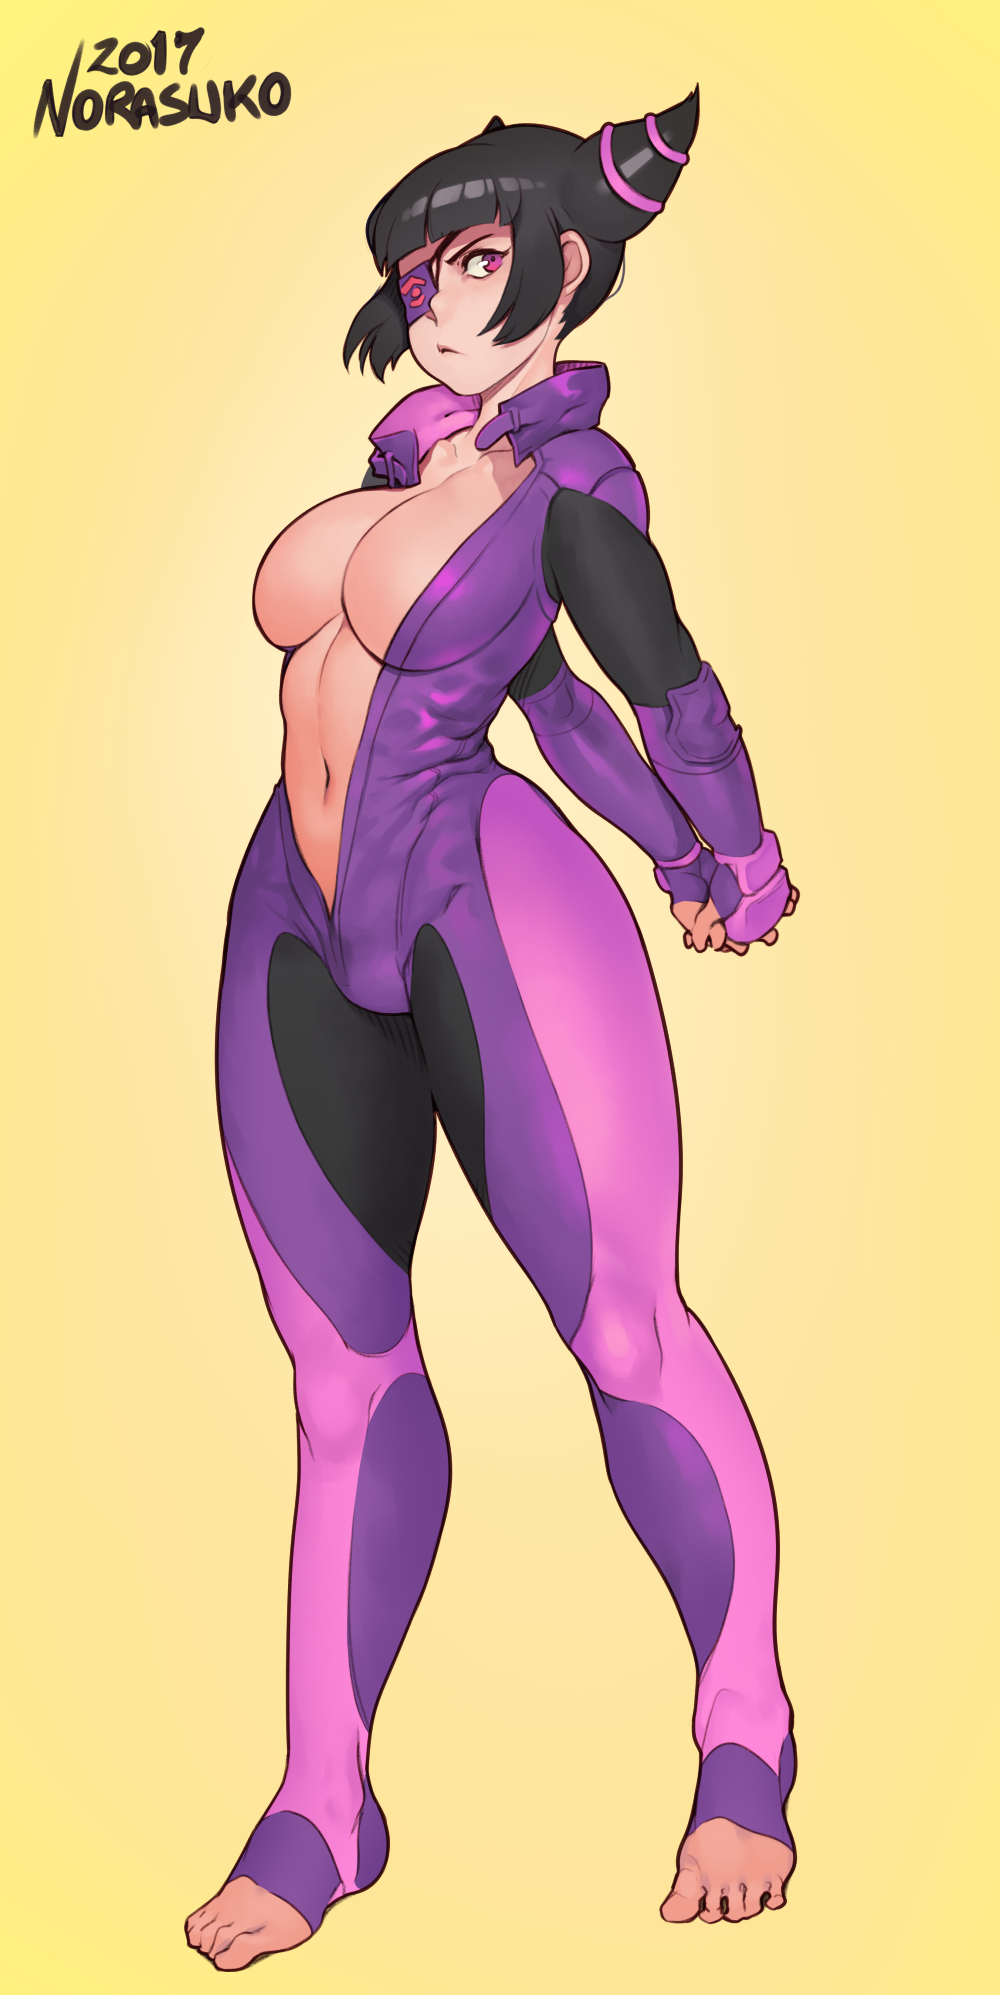 :< alternate_breast_size arms_behind_back asian barefoot biker_clothes bikesuit black_hair breasts cleavage curvy eyepatch feet female female_only full_body han_juri highres interlocked_fingers large_breasts navel no_bra norasuko one-eyed short_hair simple_background solo stomach street_fighter street_fighter_v stretching thick_thighs thighs toeless_legwear toes unzipped violet_eyes